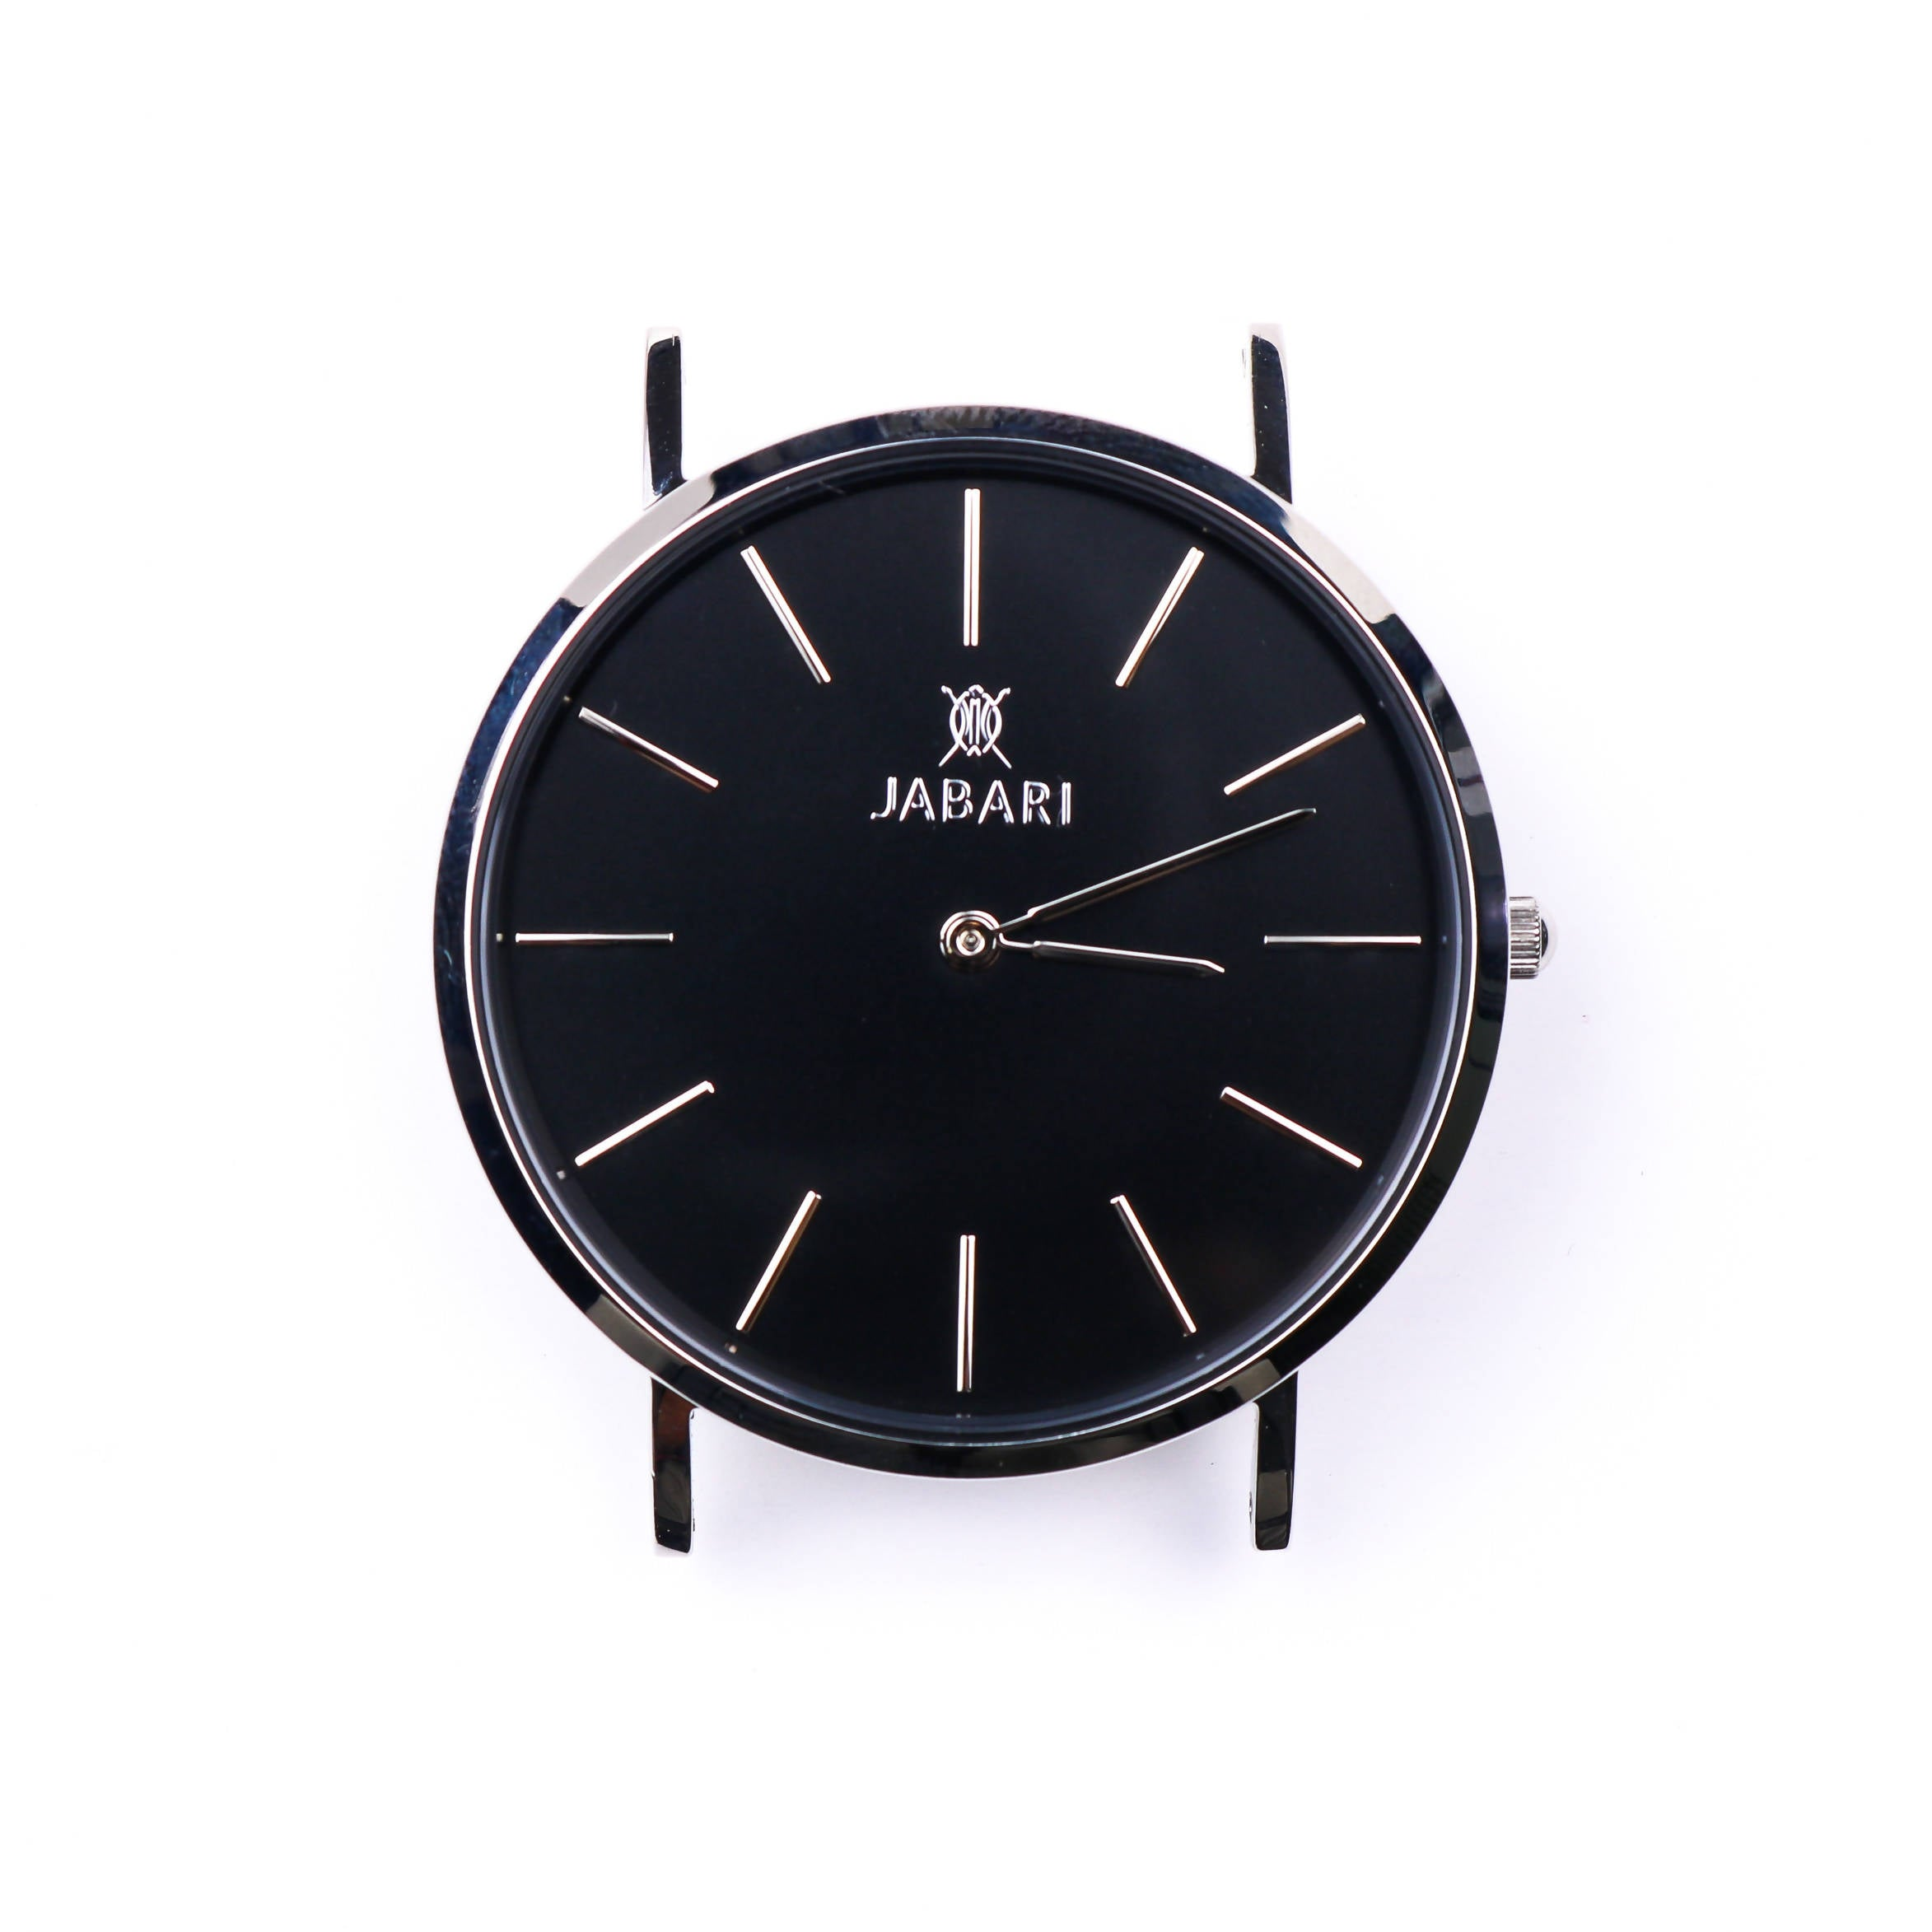 WAKATI | TIME - Beaded Leather Watch